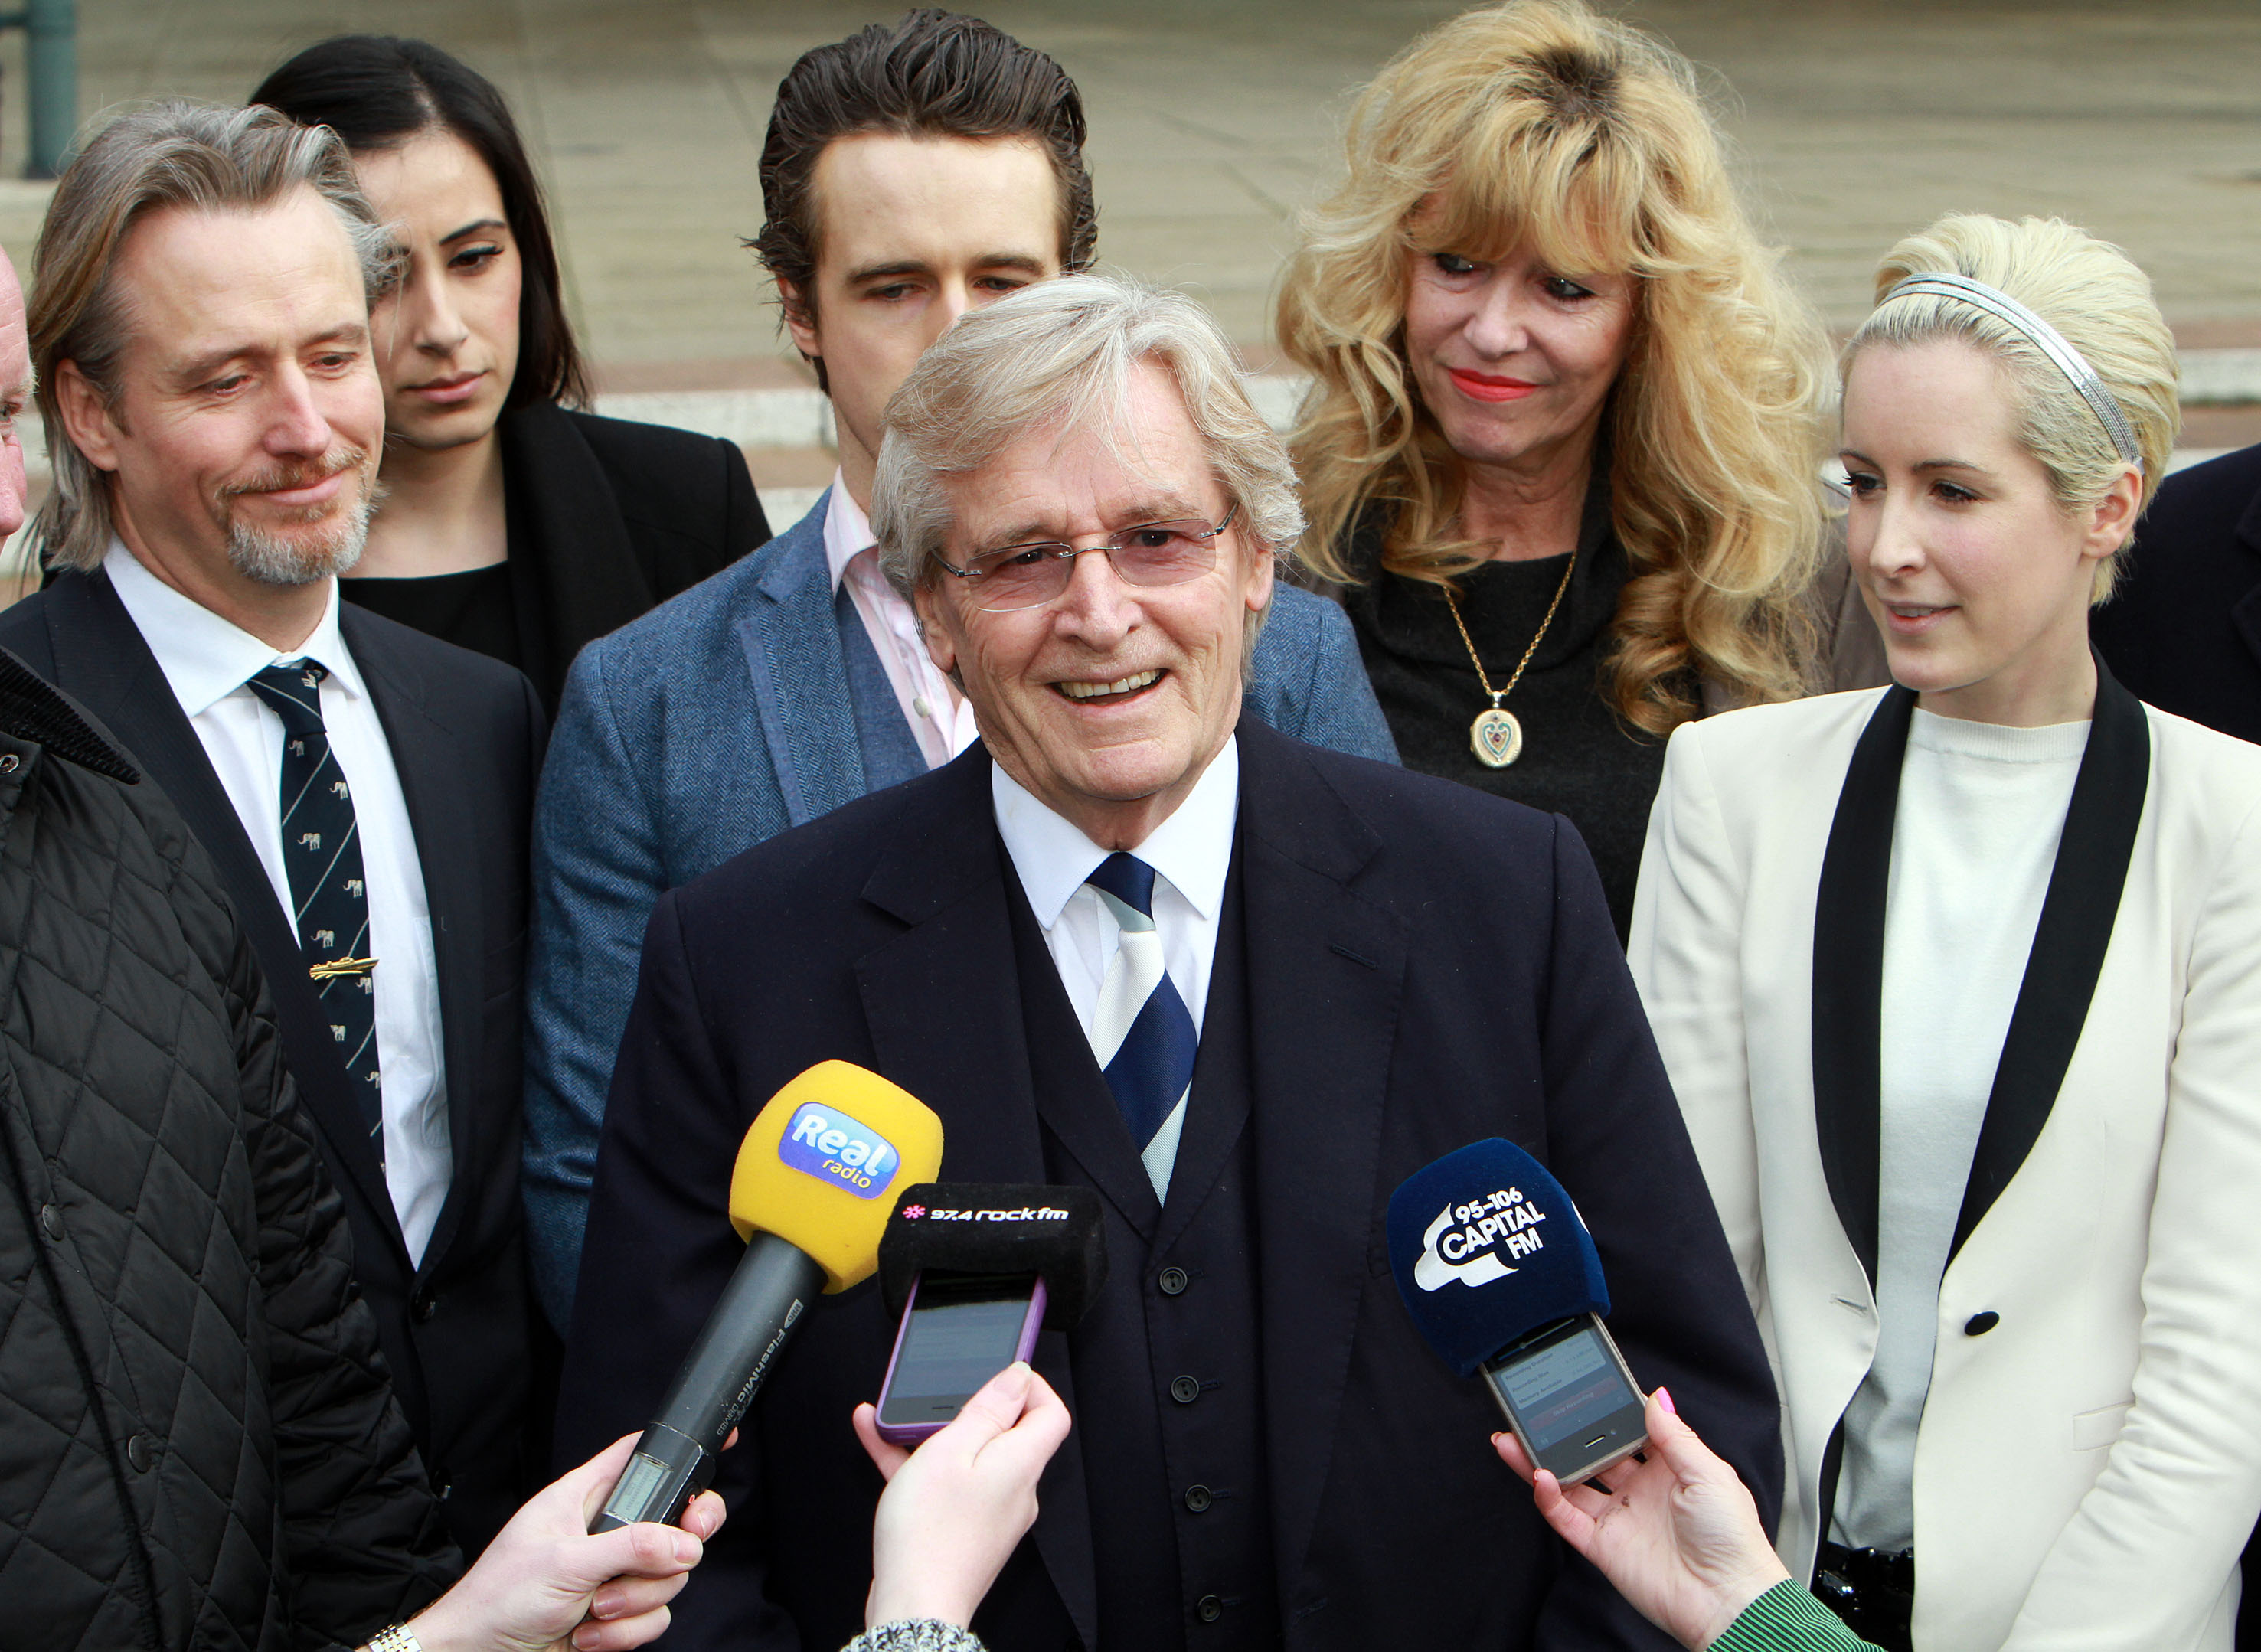 Coronation Street legend Bill Roache is found Not Guilty on all charges at his trial for historic sexual assaults and rape at Preston Crown Court. Pictured: Bill Roache Ref: SPL692358 060214 NON-EXCLUSIVE Picture by: SplashNews.com Splash News and Pictures Los Angeles: 310-821-2666 New York: 212-619-2666 London: +44 (0)20 7644 7656 Berlin: +49 175 3764 166 photodesk@splashnews.com World Rights